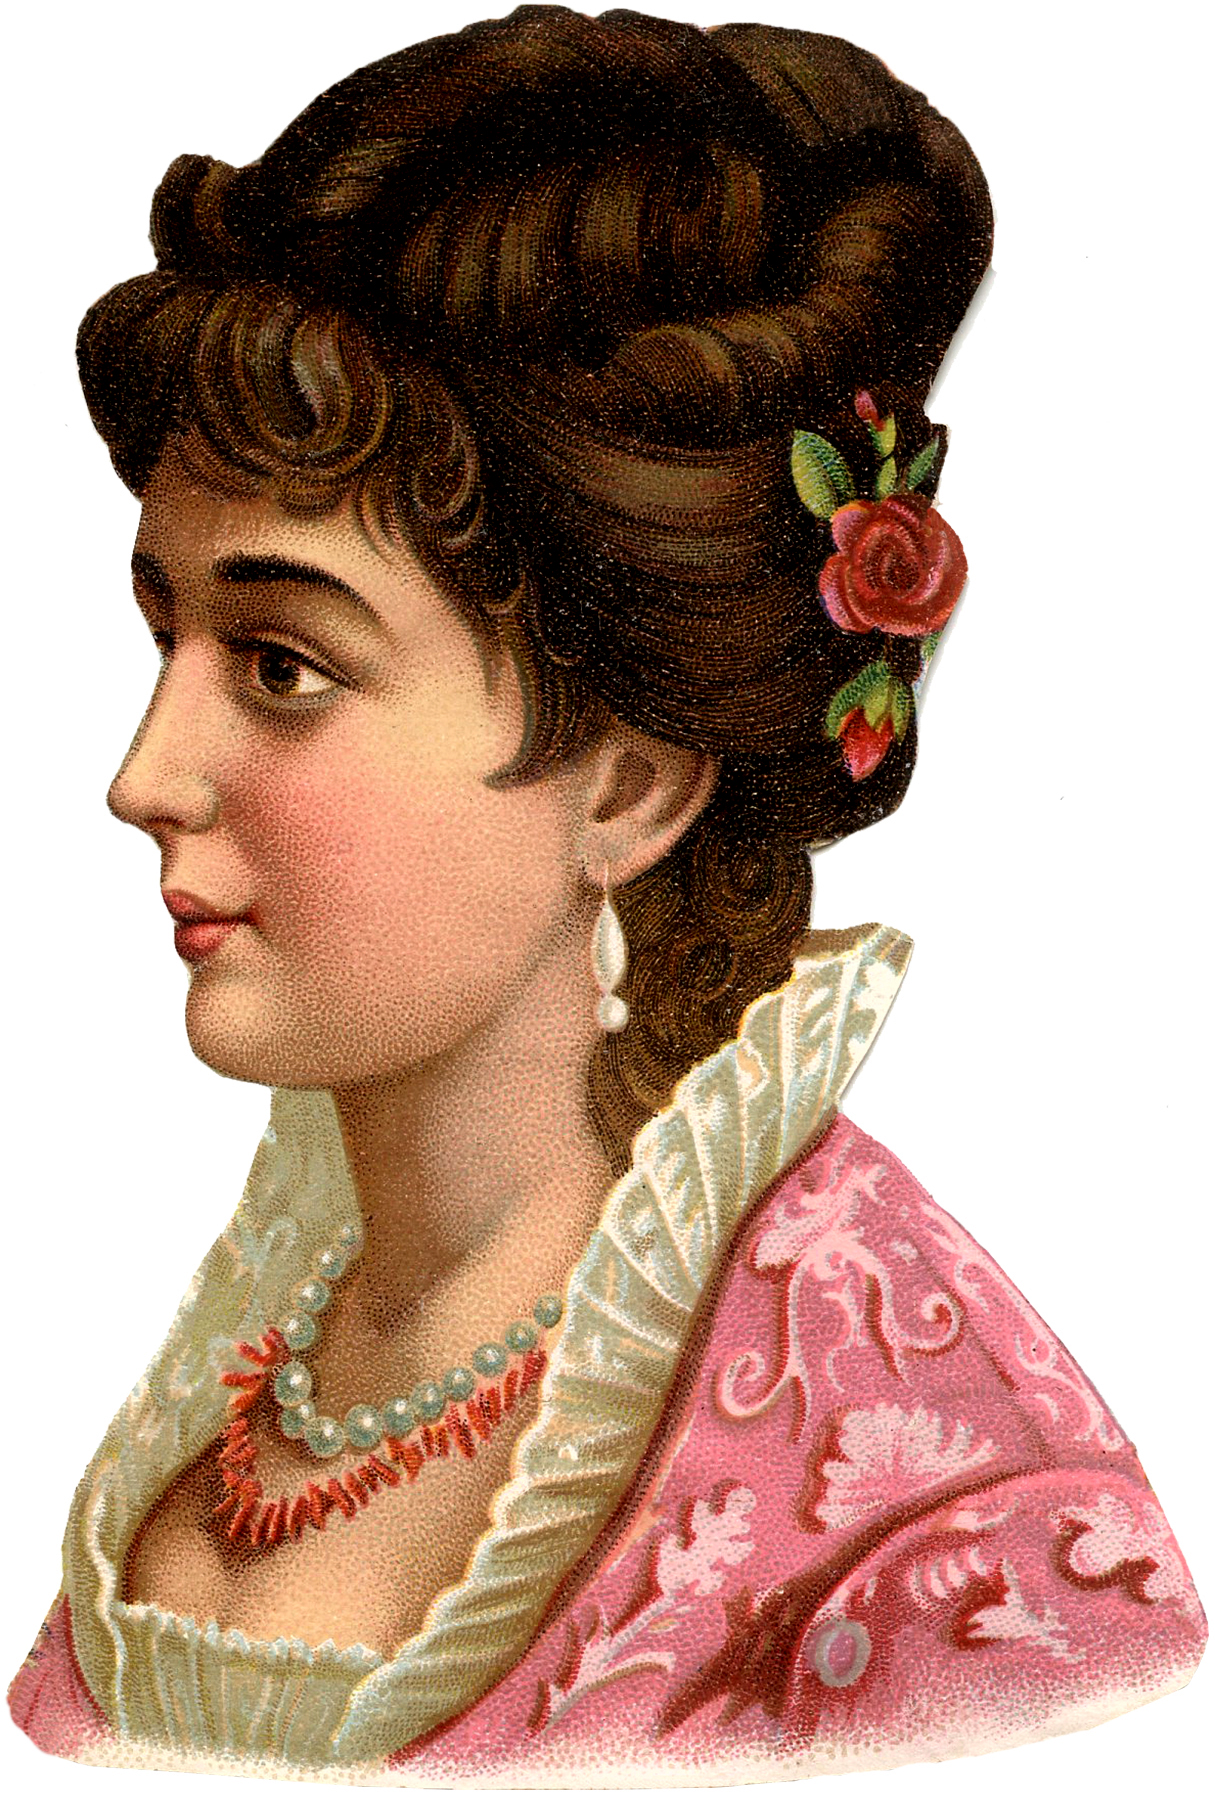 http://thegraphicsfairy.com/wp-content/uploads/2015/06/Vintage-Lady-in-Pink-GraphicsFairy.jpg